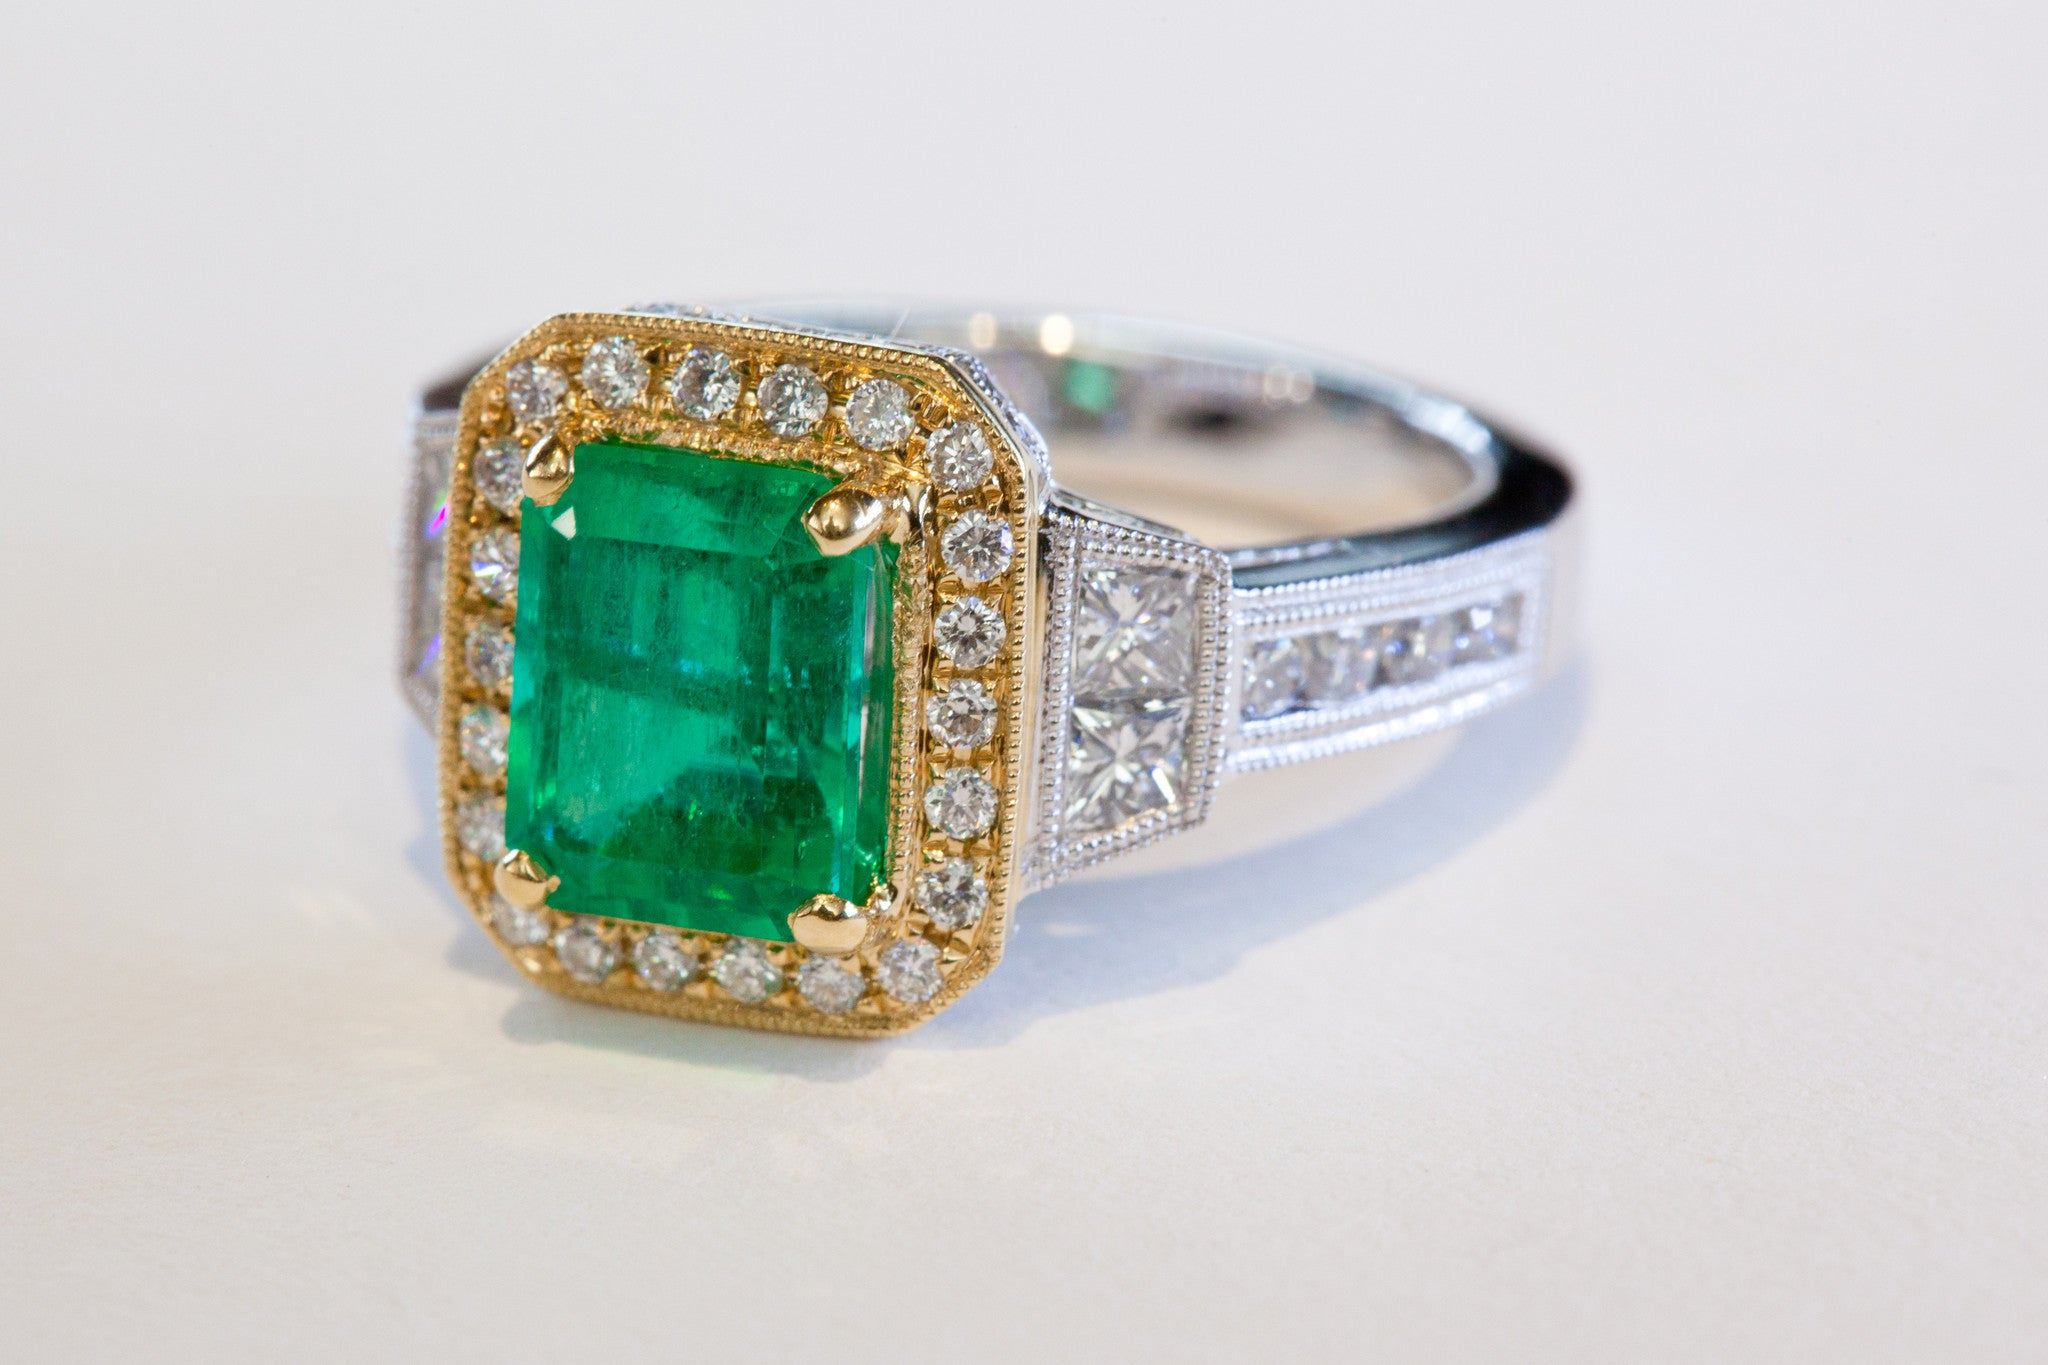 Angle 2 Carat Emerald ring with diamond accents